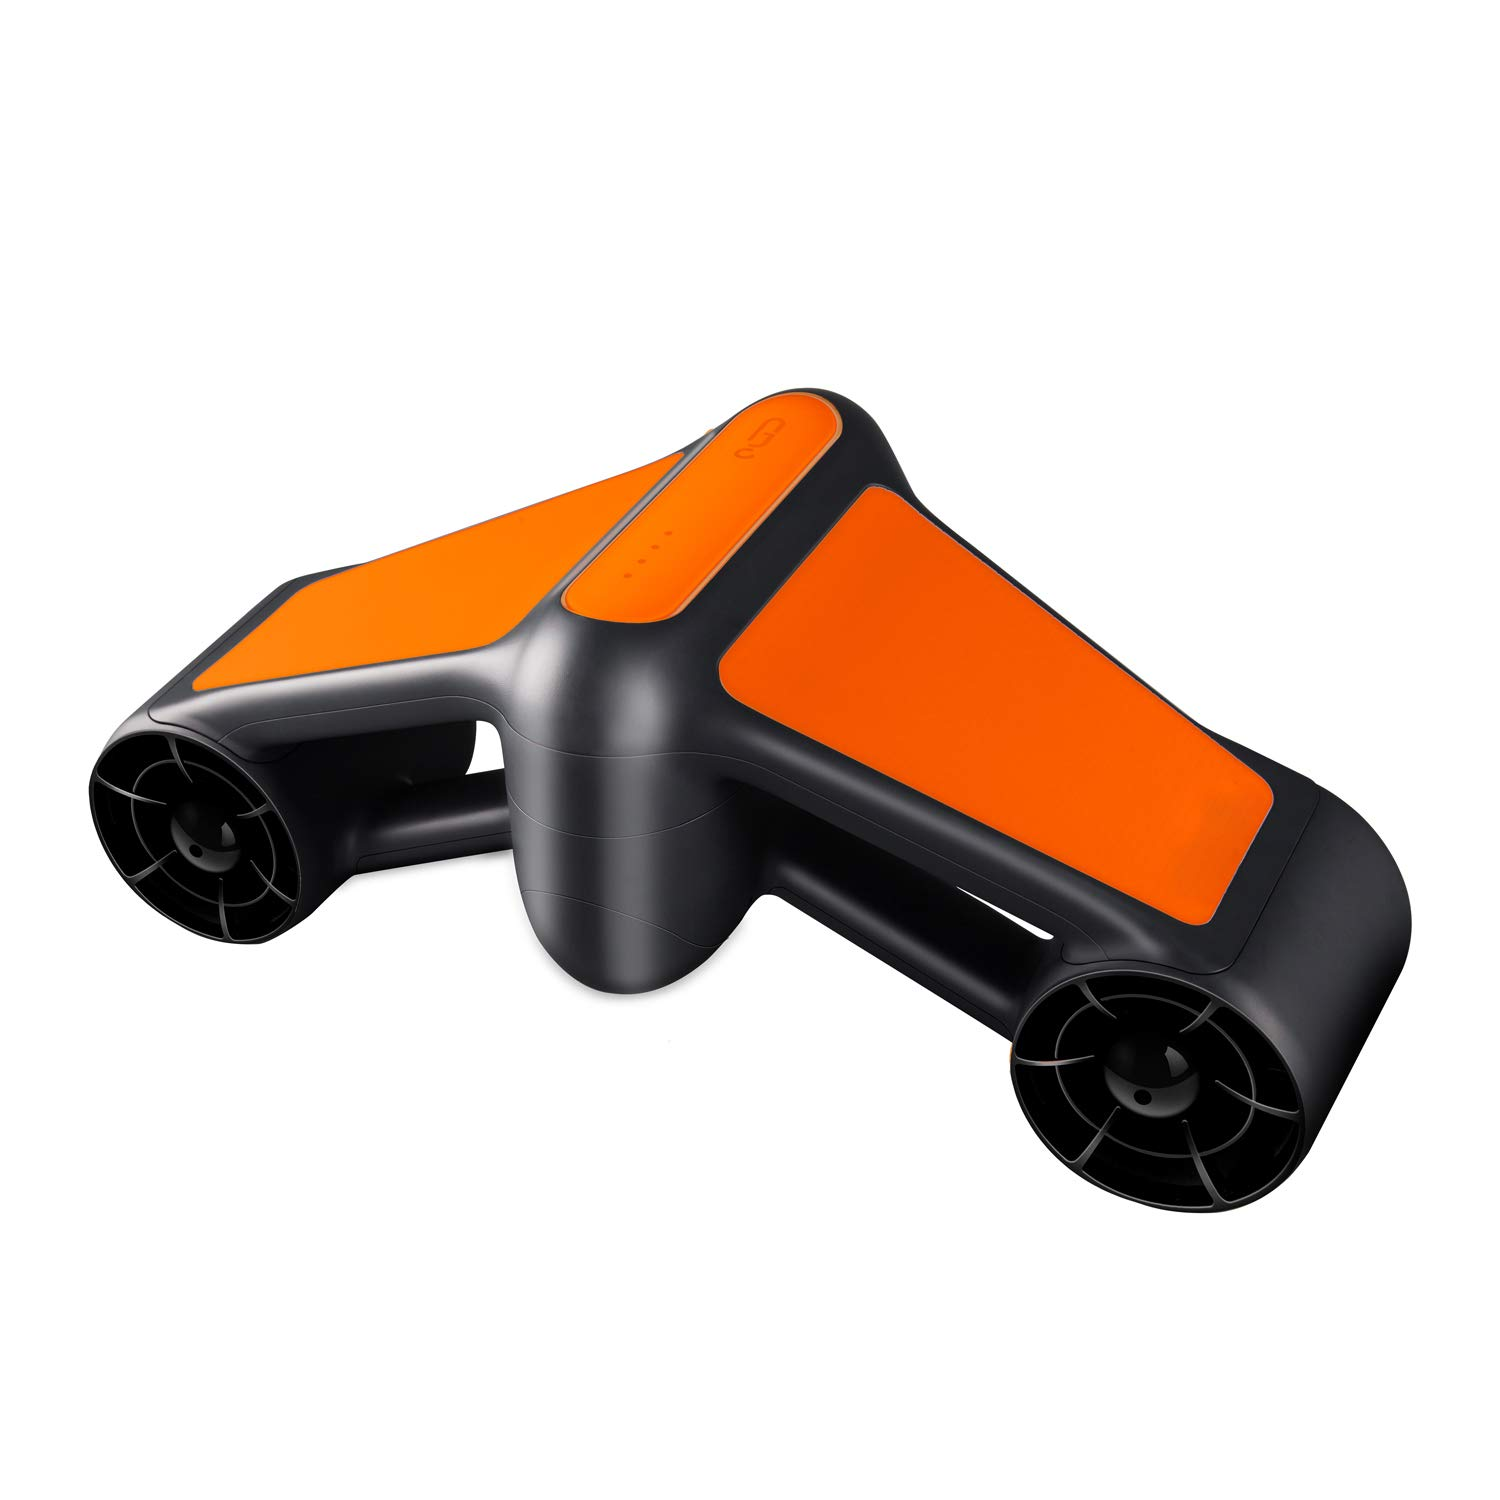 JASSCOL Seascooter 164ft 4mph Underwater Scooter 2 Speed Snorkeling Scuba Diving Action Camera Compatible by JASSCOL